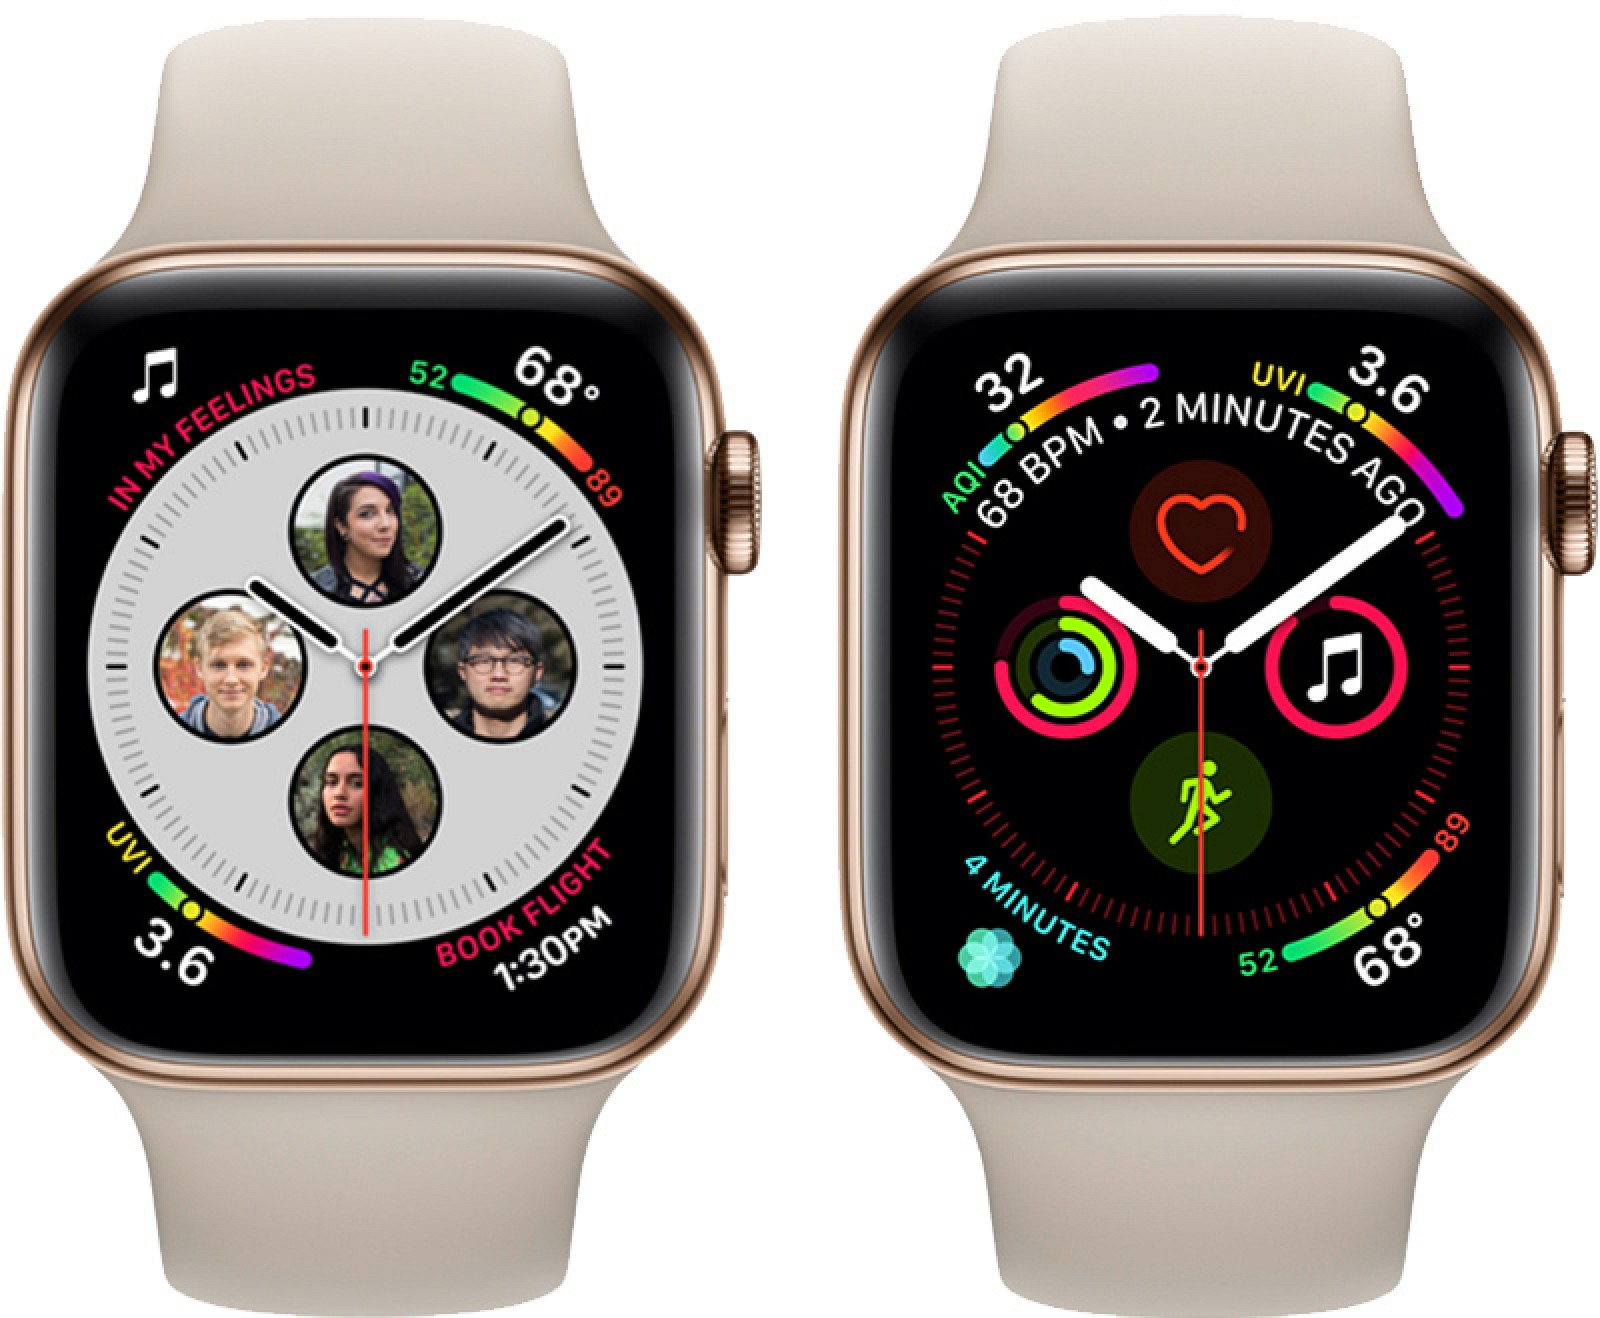 Apple Releases WatchOS 5.2.1 with ECG Functionality for Additional European Countries